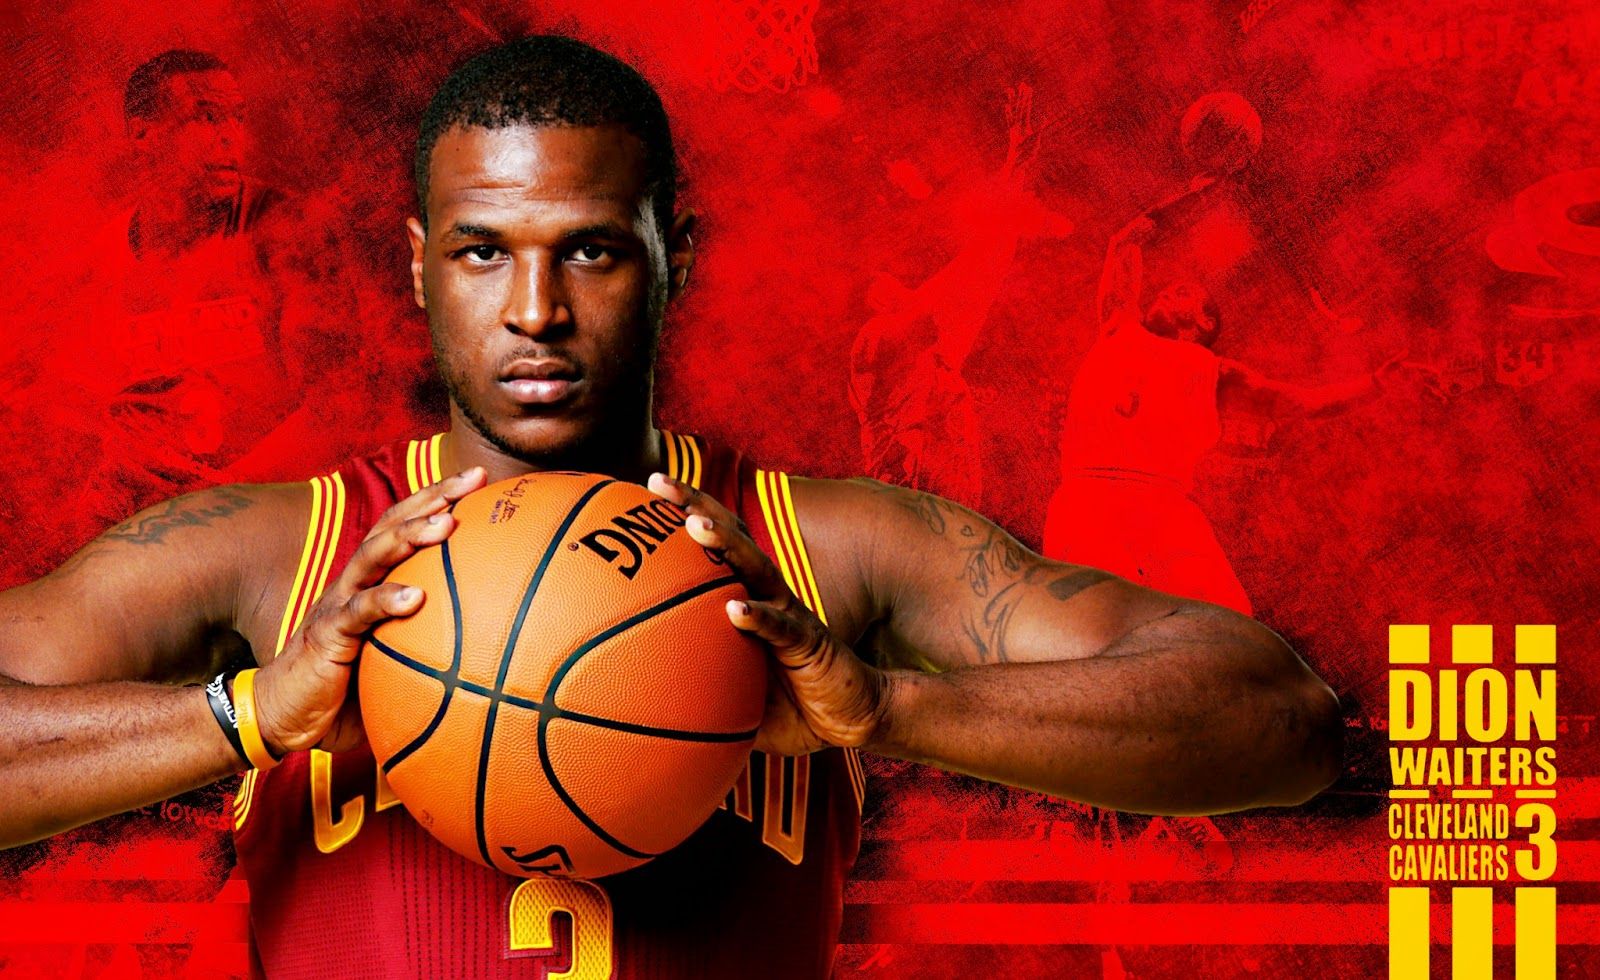 dion waiters wallpaper - photo #20